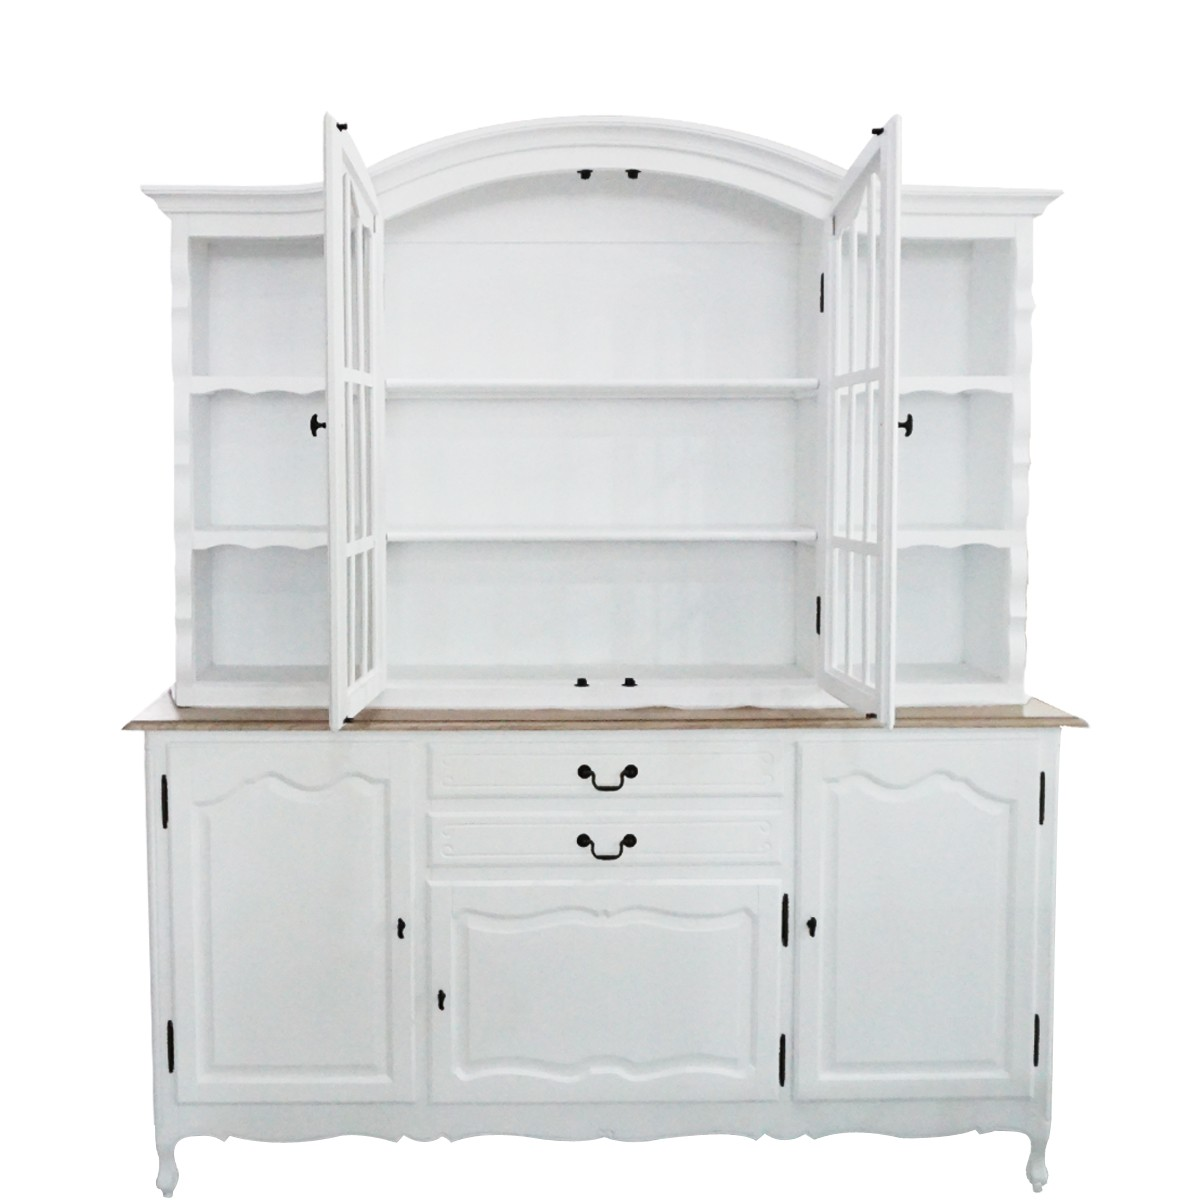 French Provincial Kitchen Cabinets: French Provincial Glass Display Buffet And Hutch Kitchen